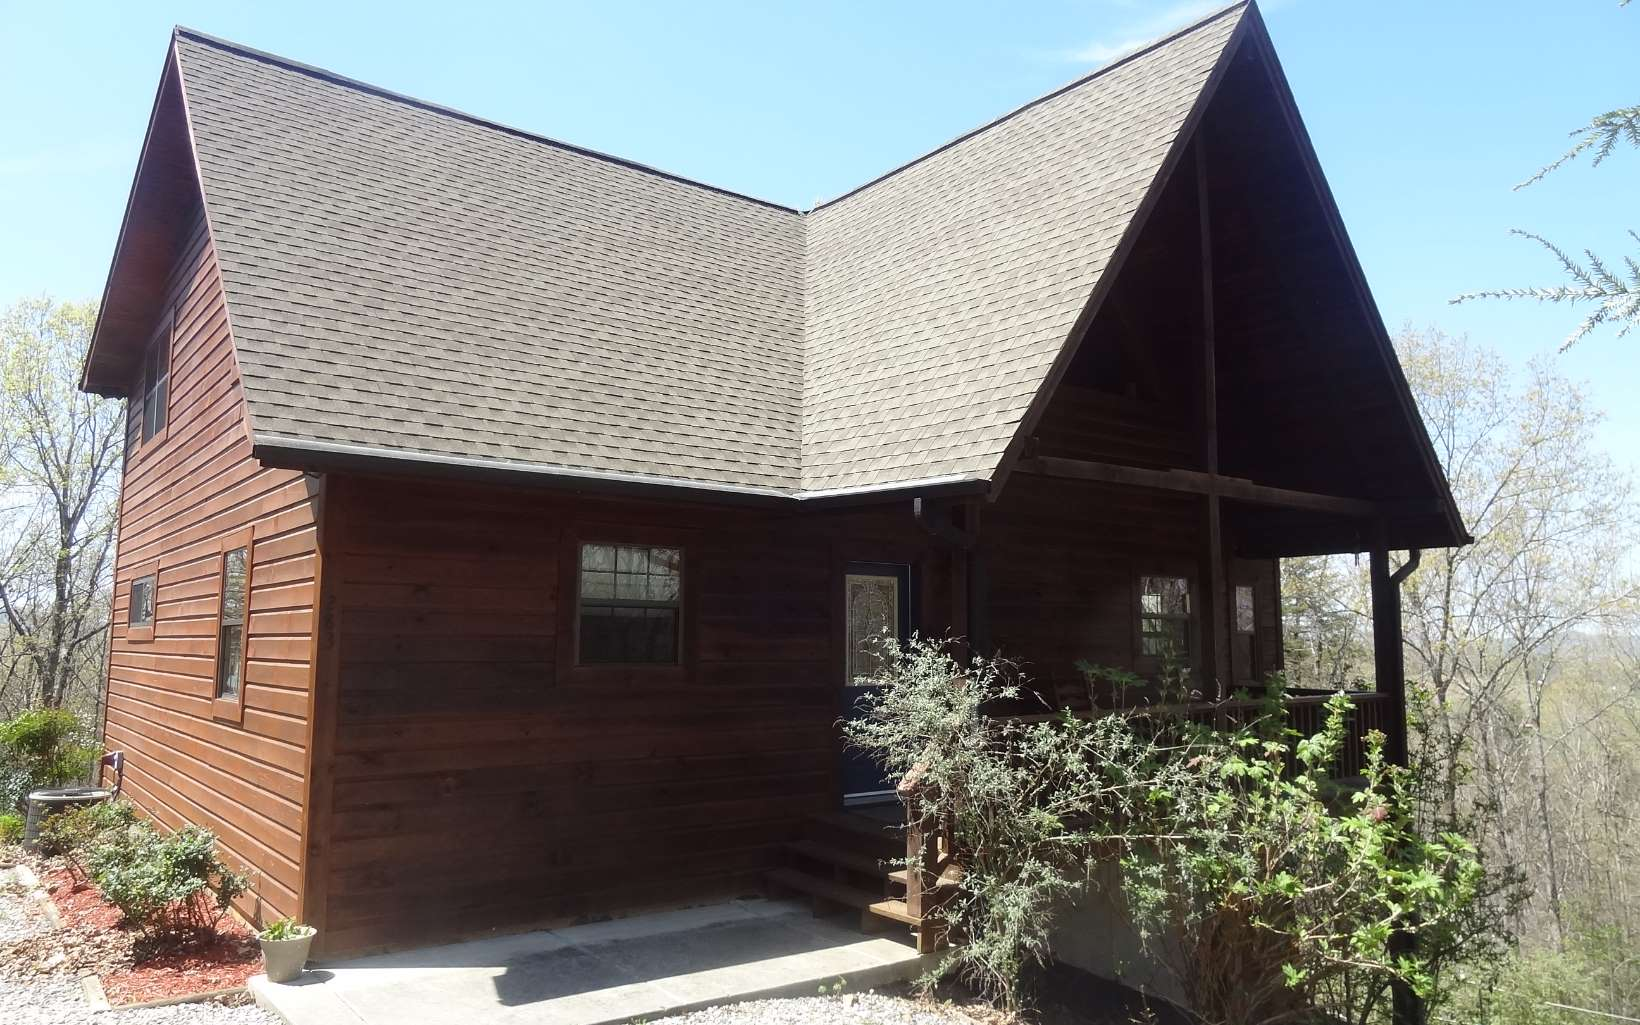 blairsville mountain north log cabins sale listingsmtnviewhomesblairsville georgia view for